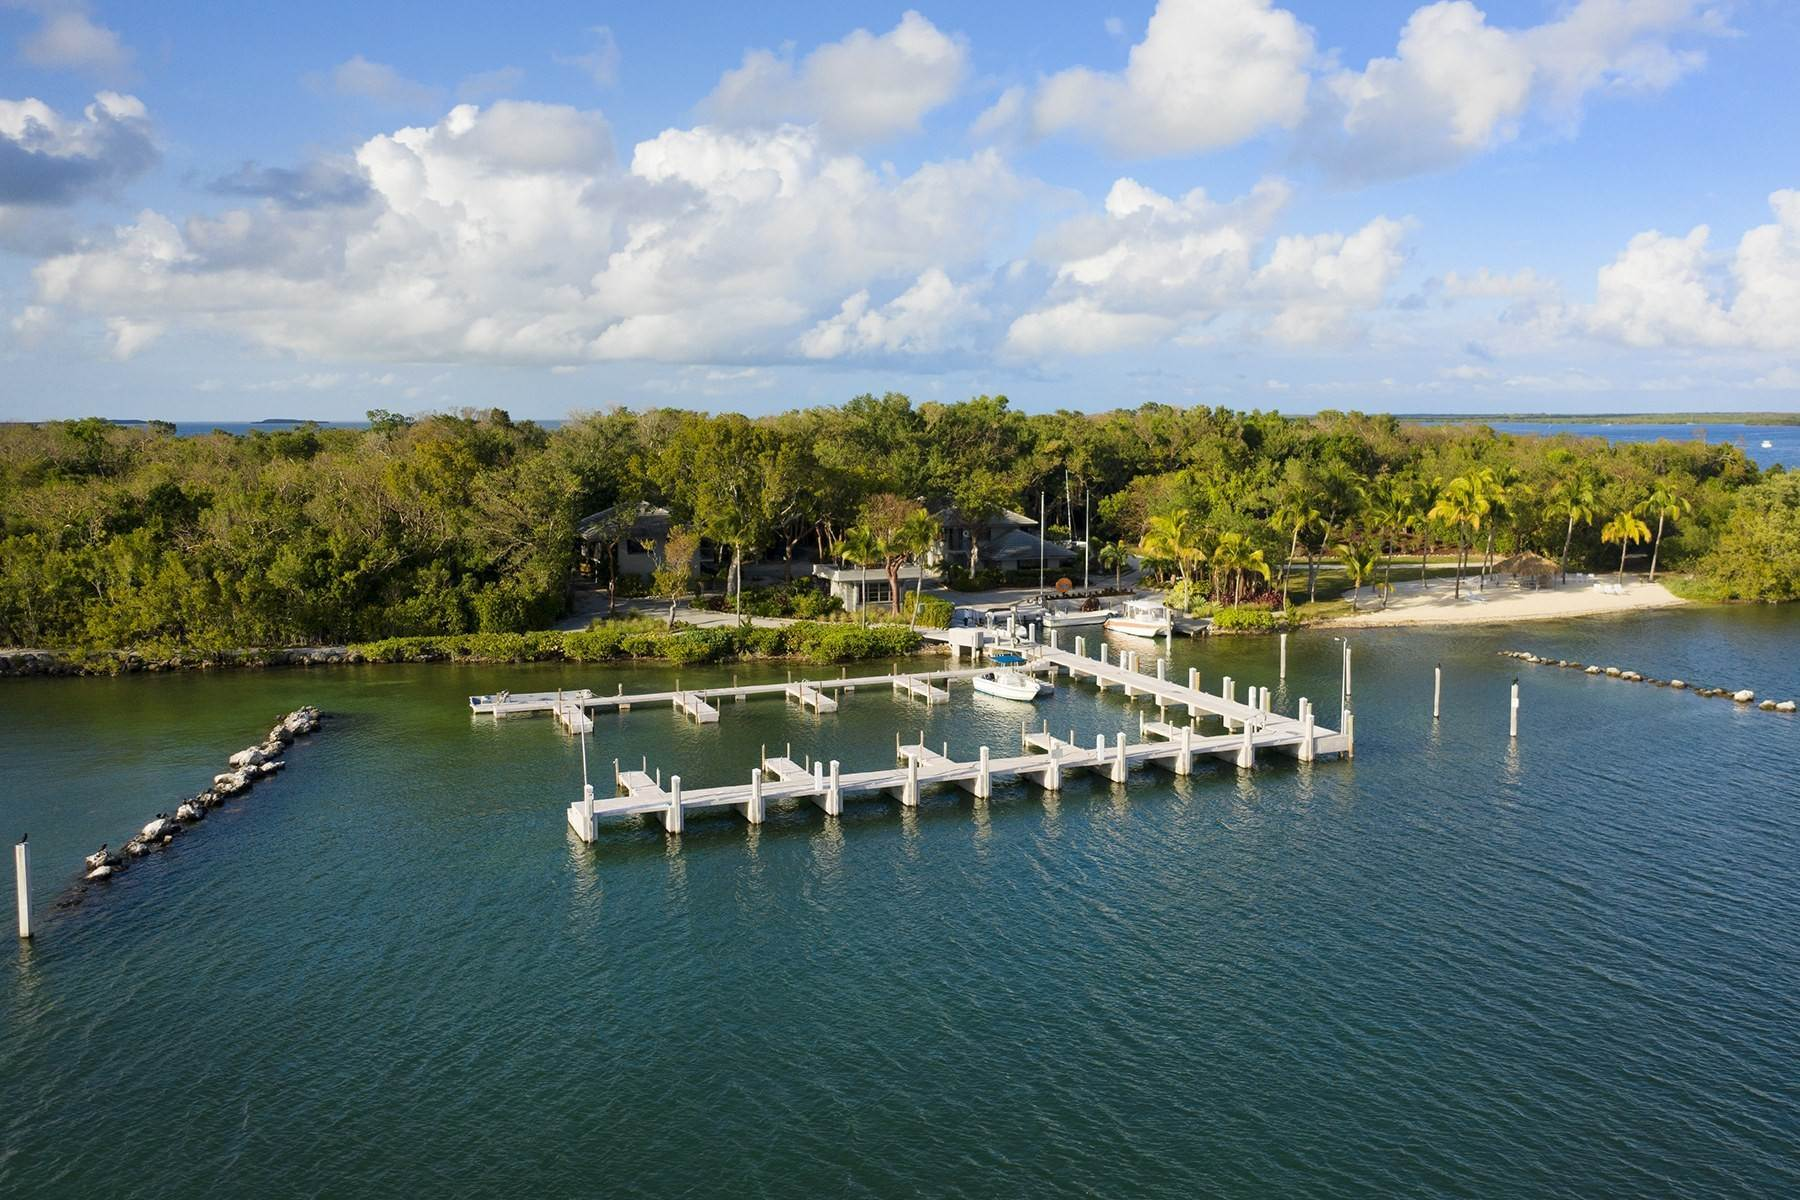 5. Property for Sale at 10 Cannon Point, Key Largo, FL Key Largo, Florida 33037 United States